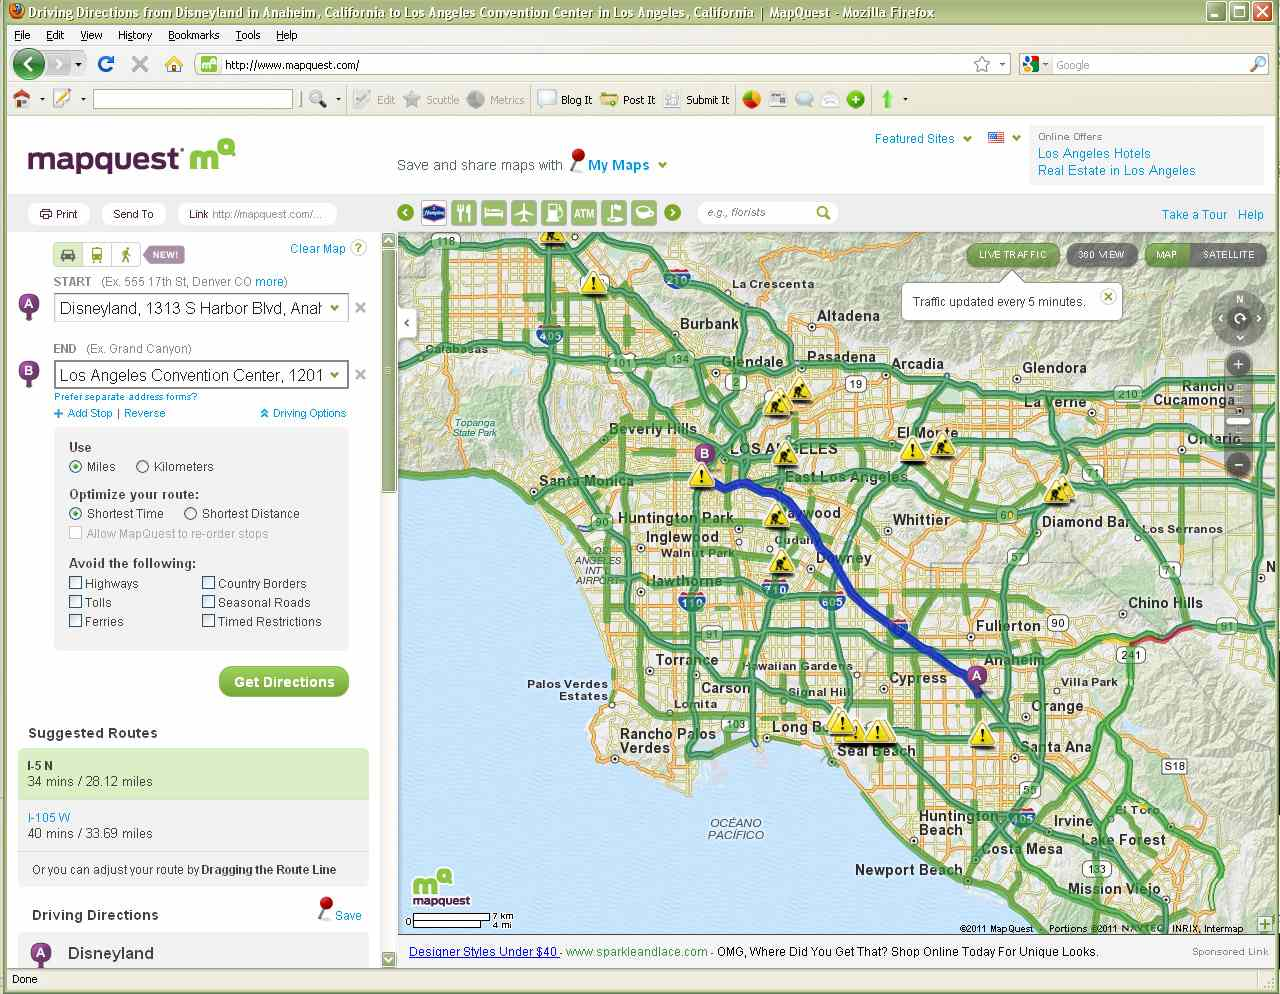 Best Los Angeles Traffic Maps and Directions Sigalert La Map on la freeway map, la traffic sigalert, western connecticut state university campus map,